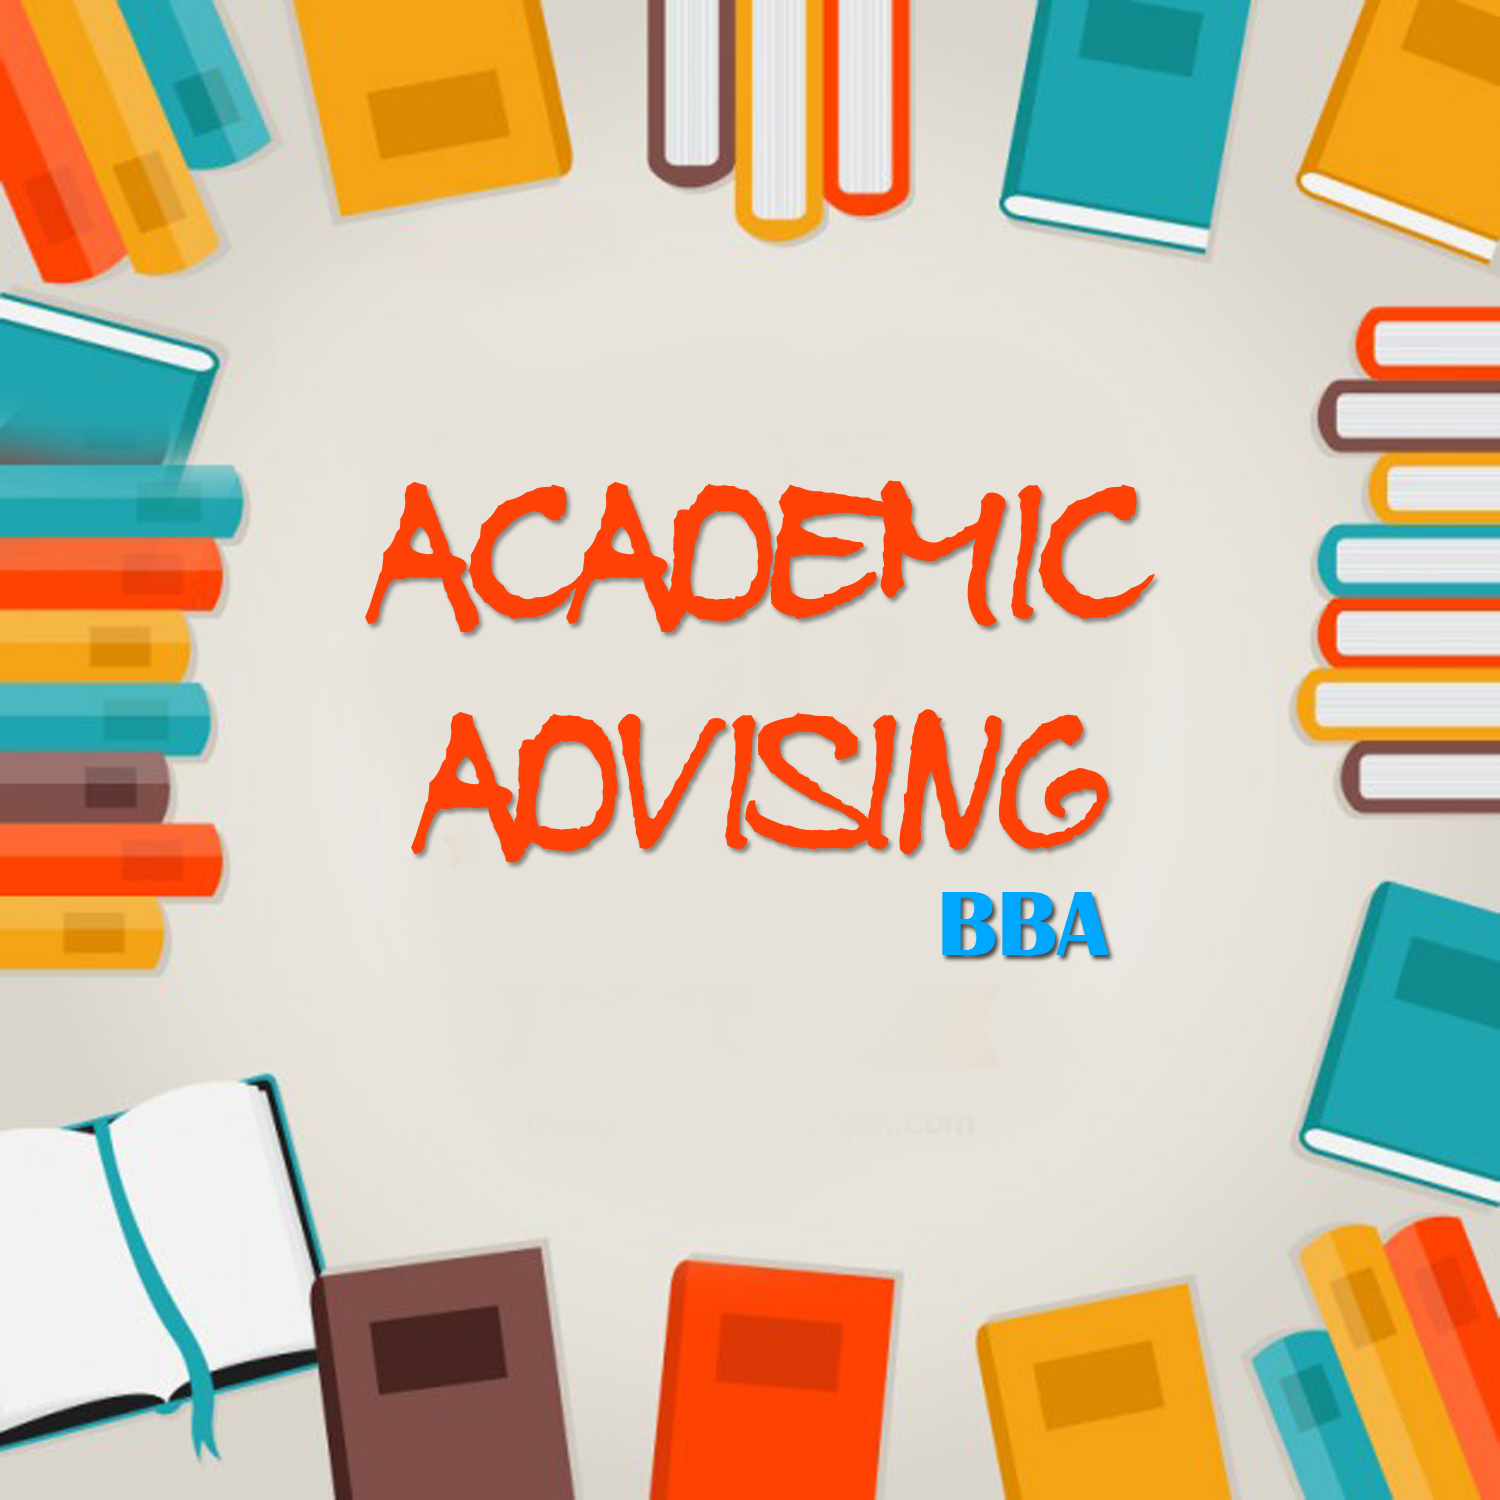 Course Image ACADEMIC ADVISING BBA